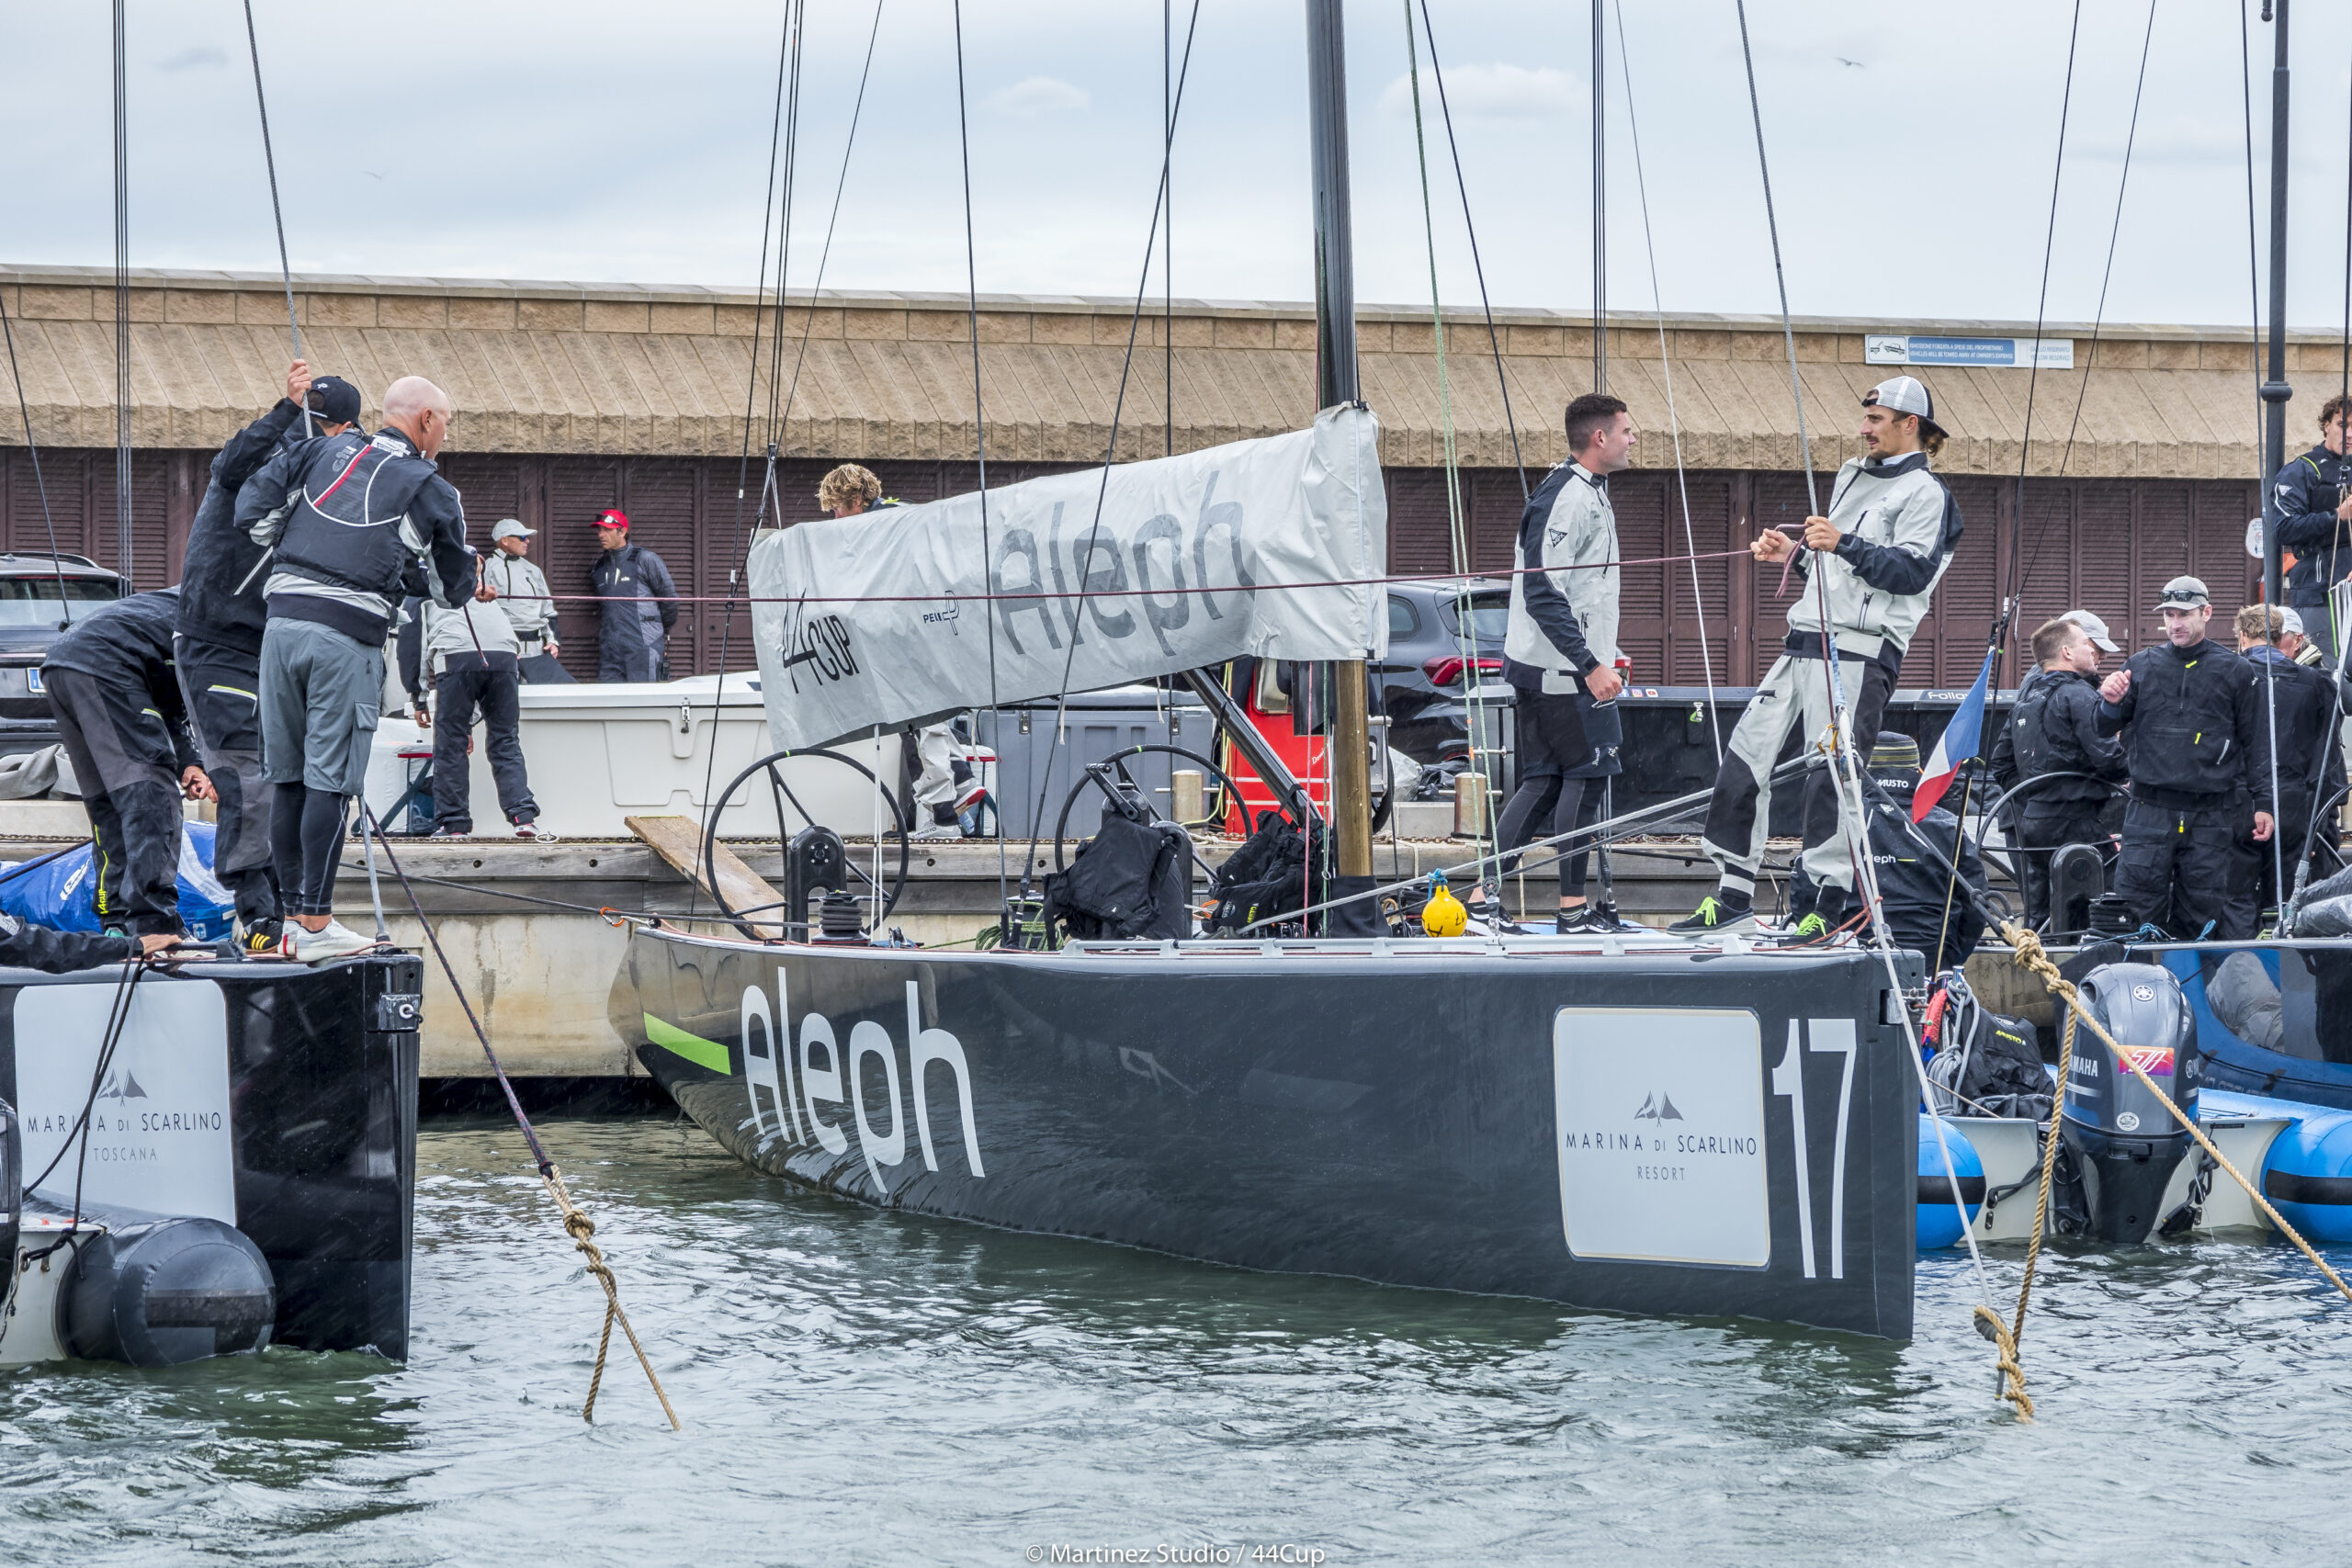 Sailors docking their boat